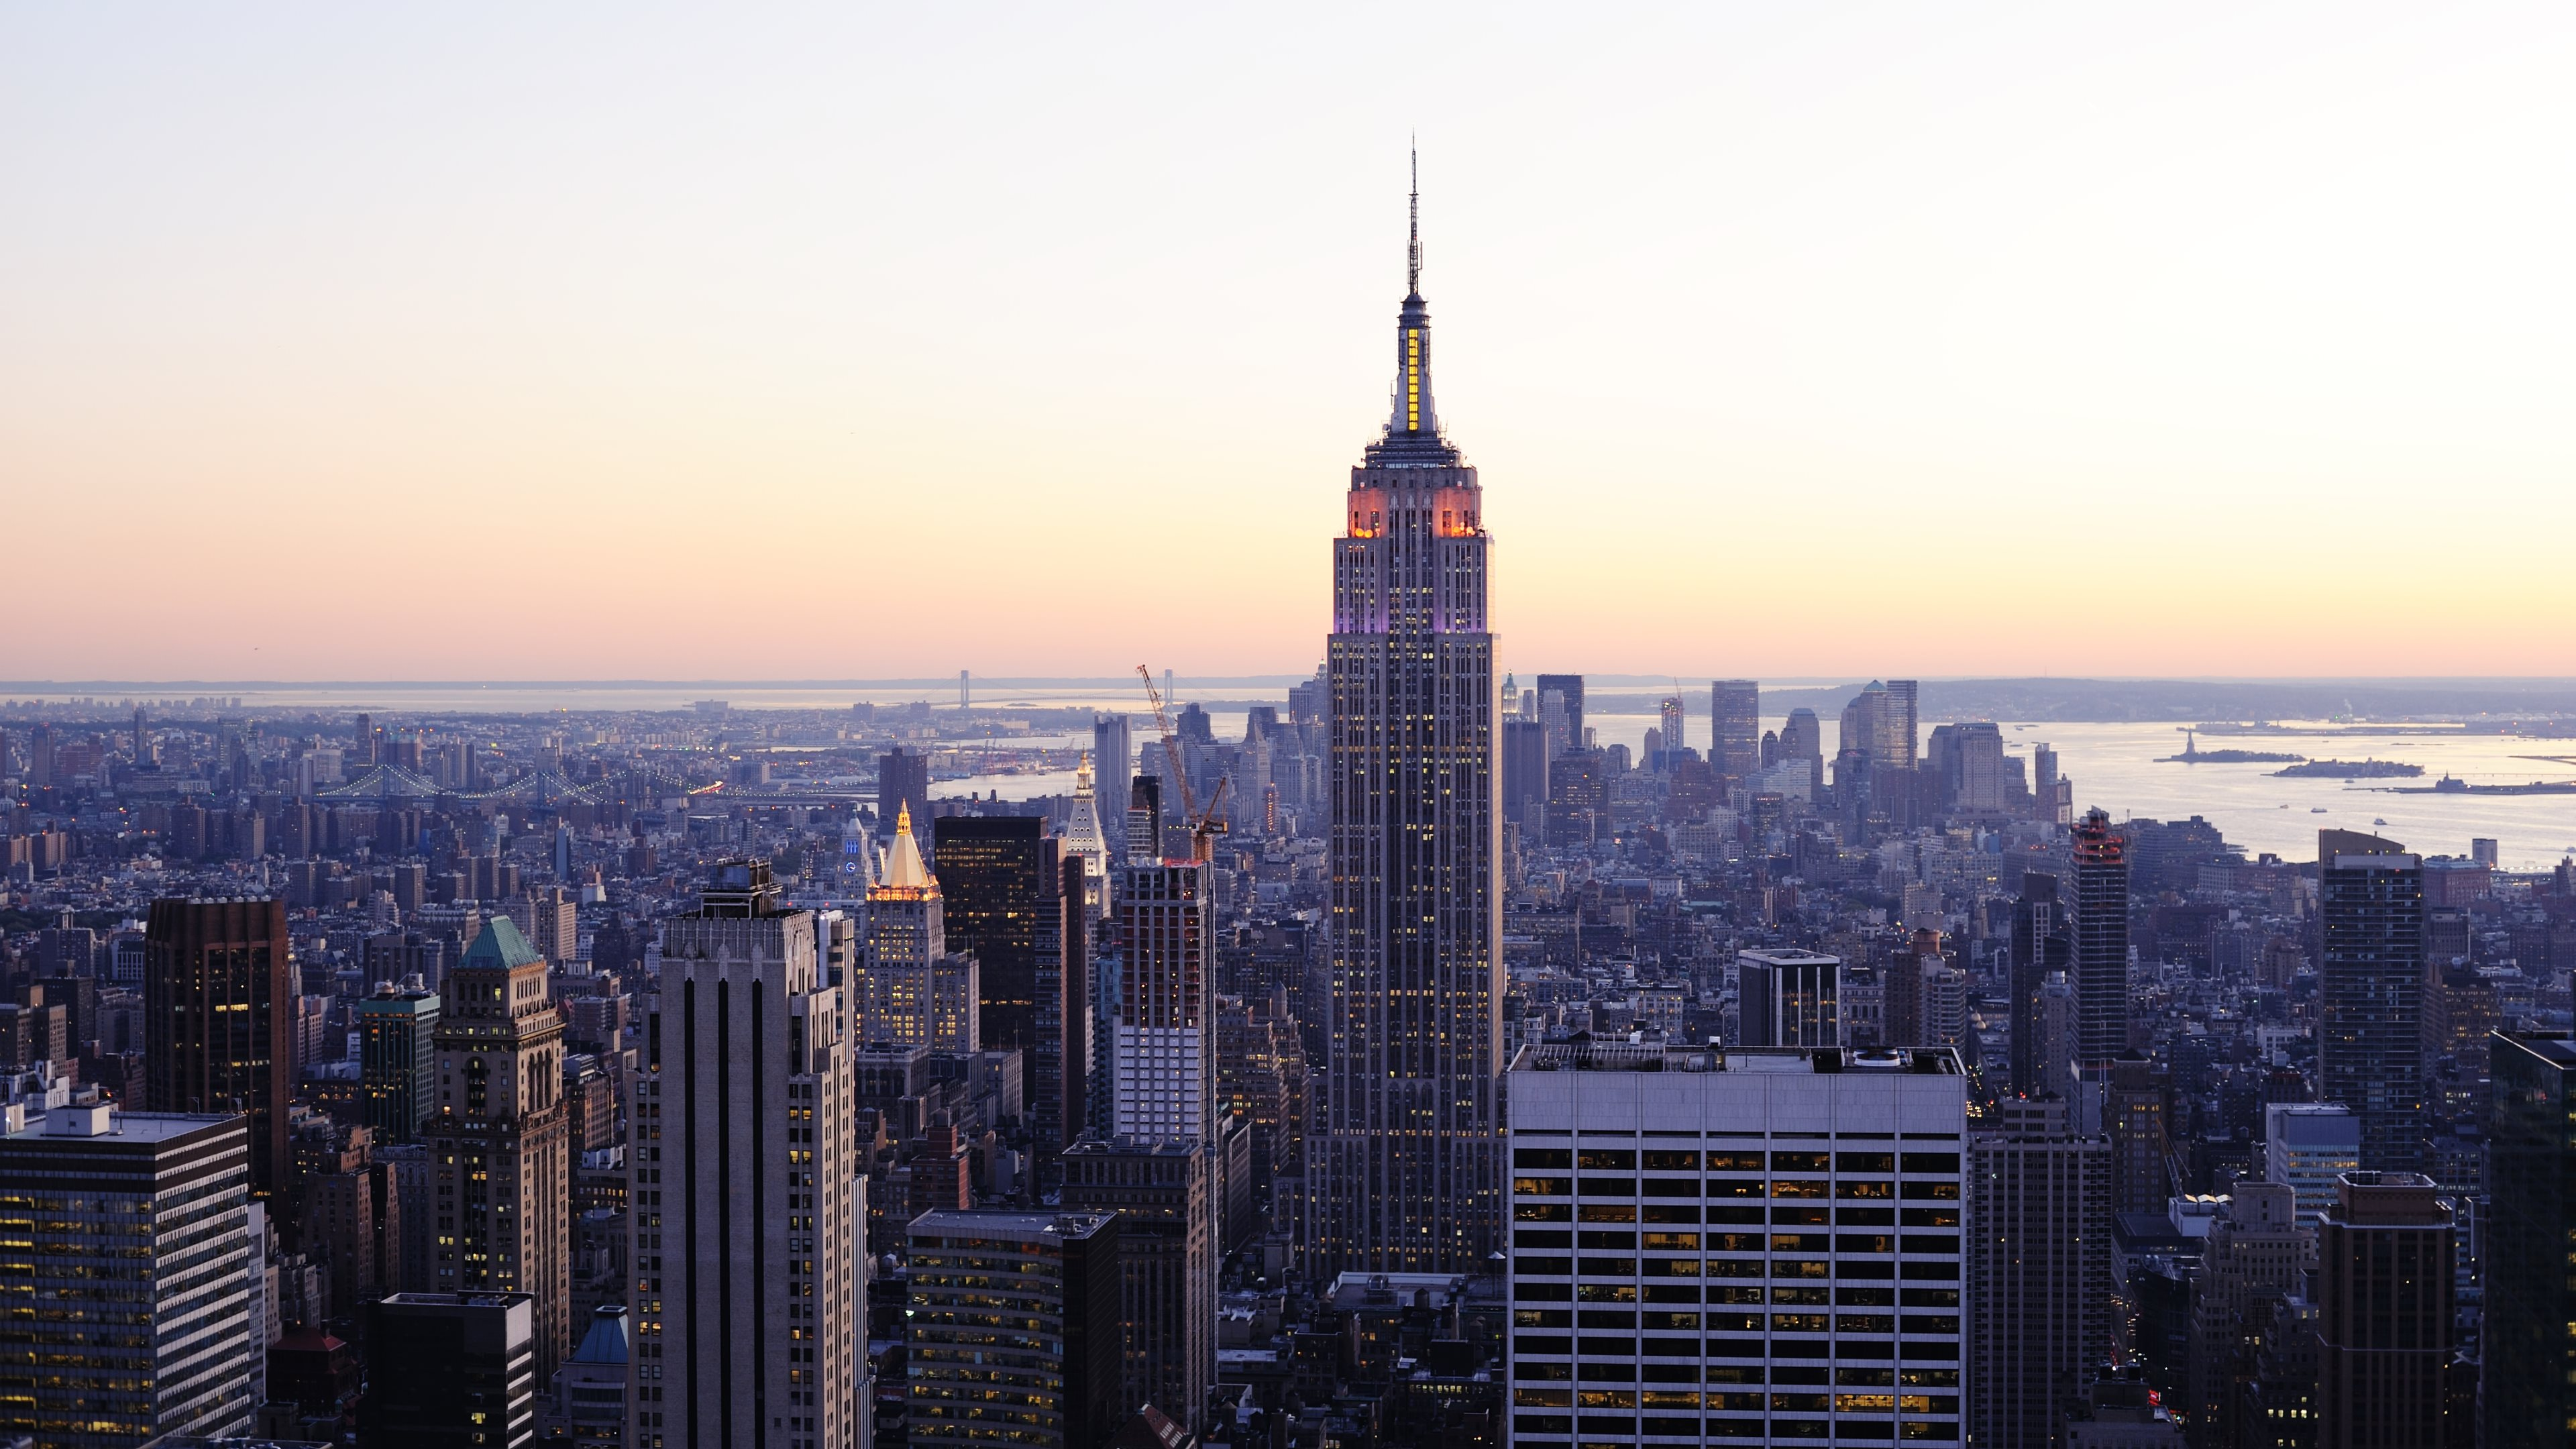 Empire State Building Wide HD Wallpaper 51590 3840x2160px